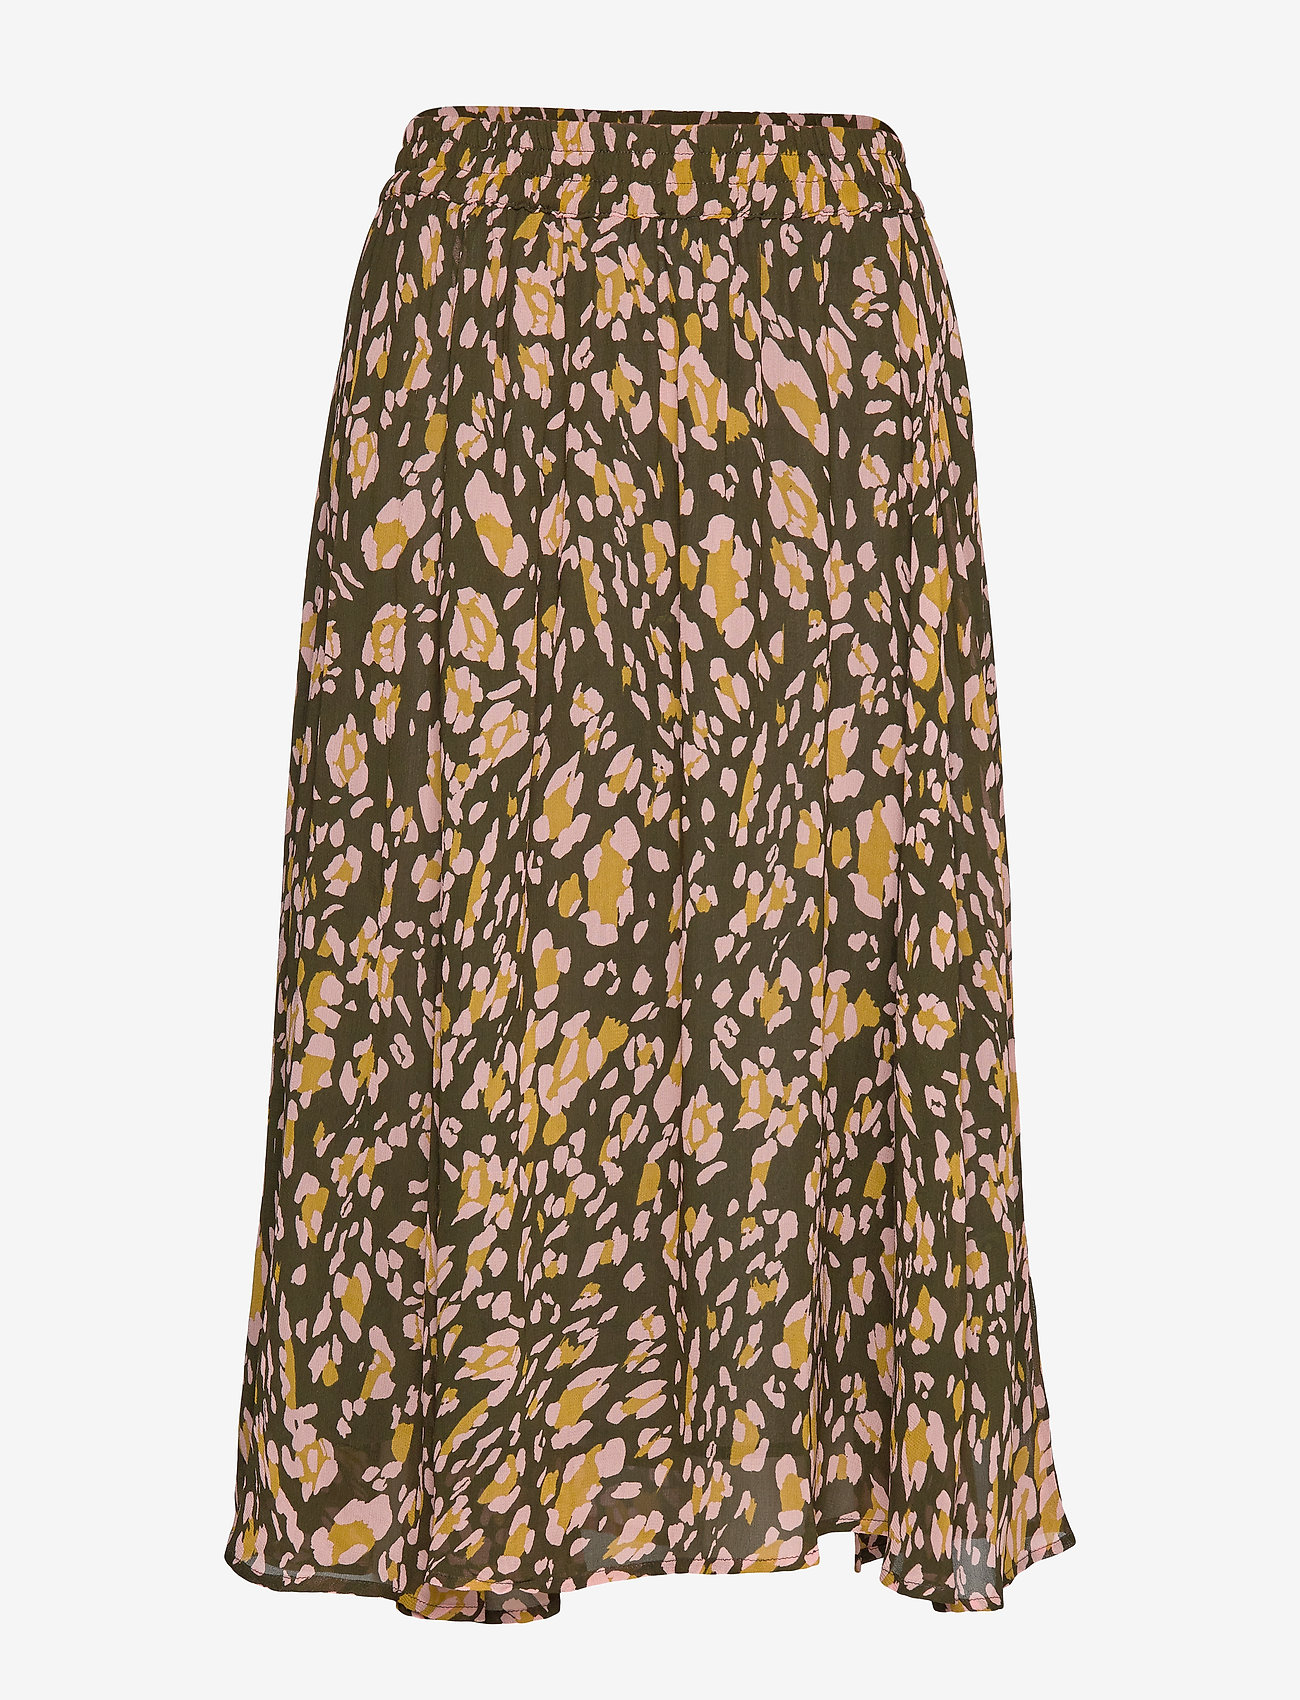 Clariceiw Skirt (Olive Leaf Irregular Animal) (600 kr) - InWear